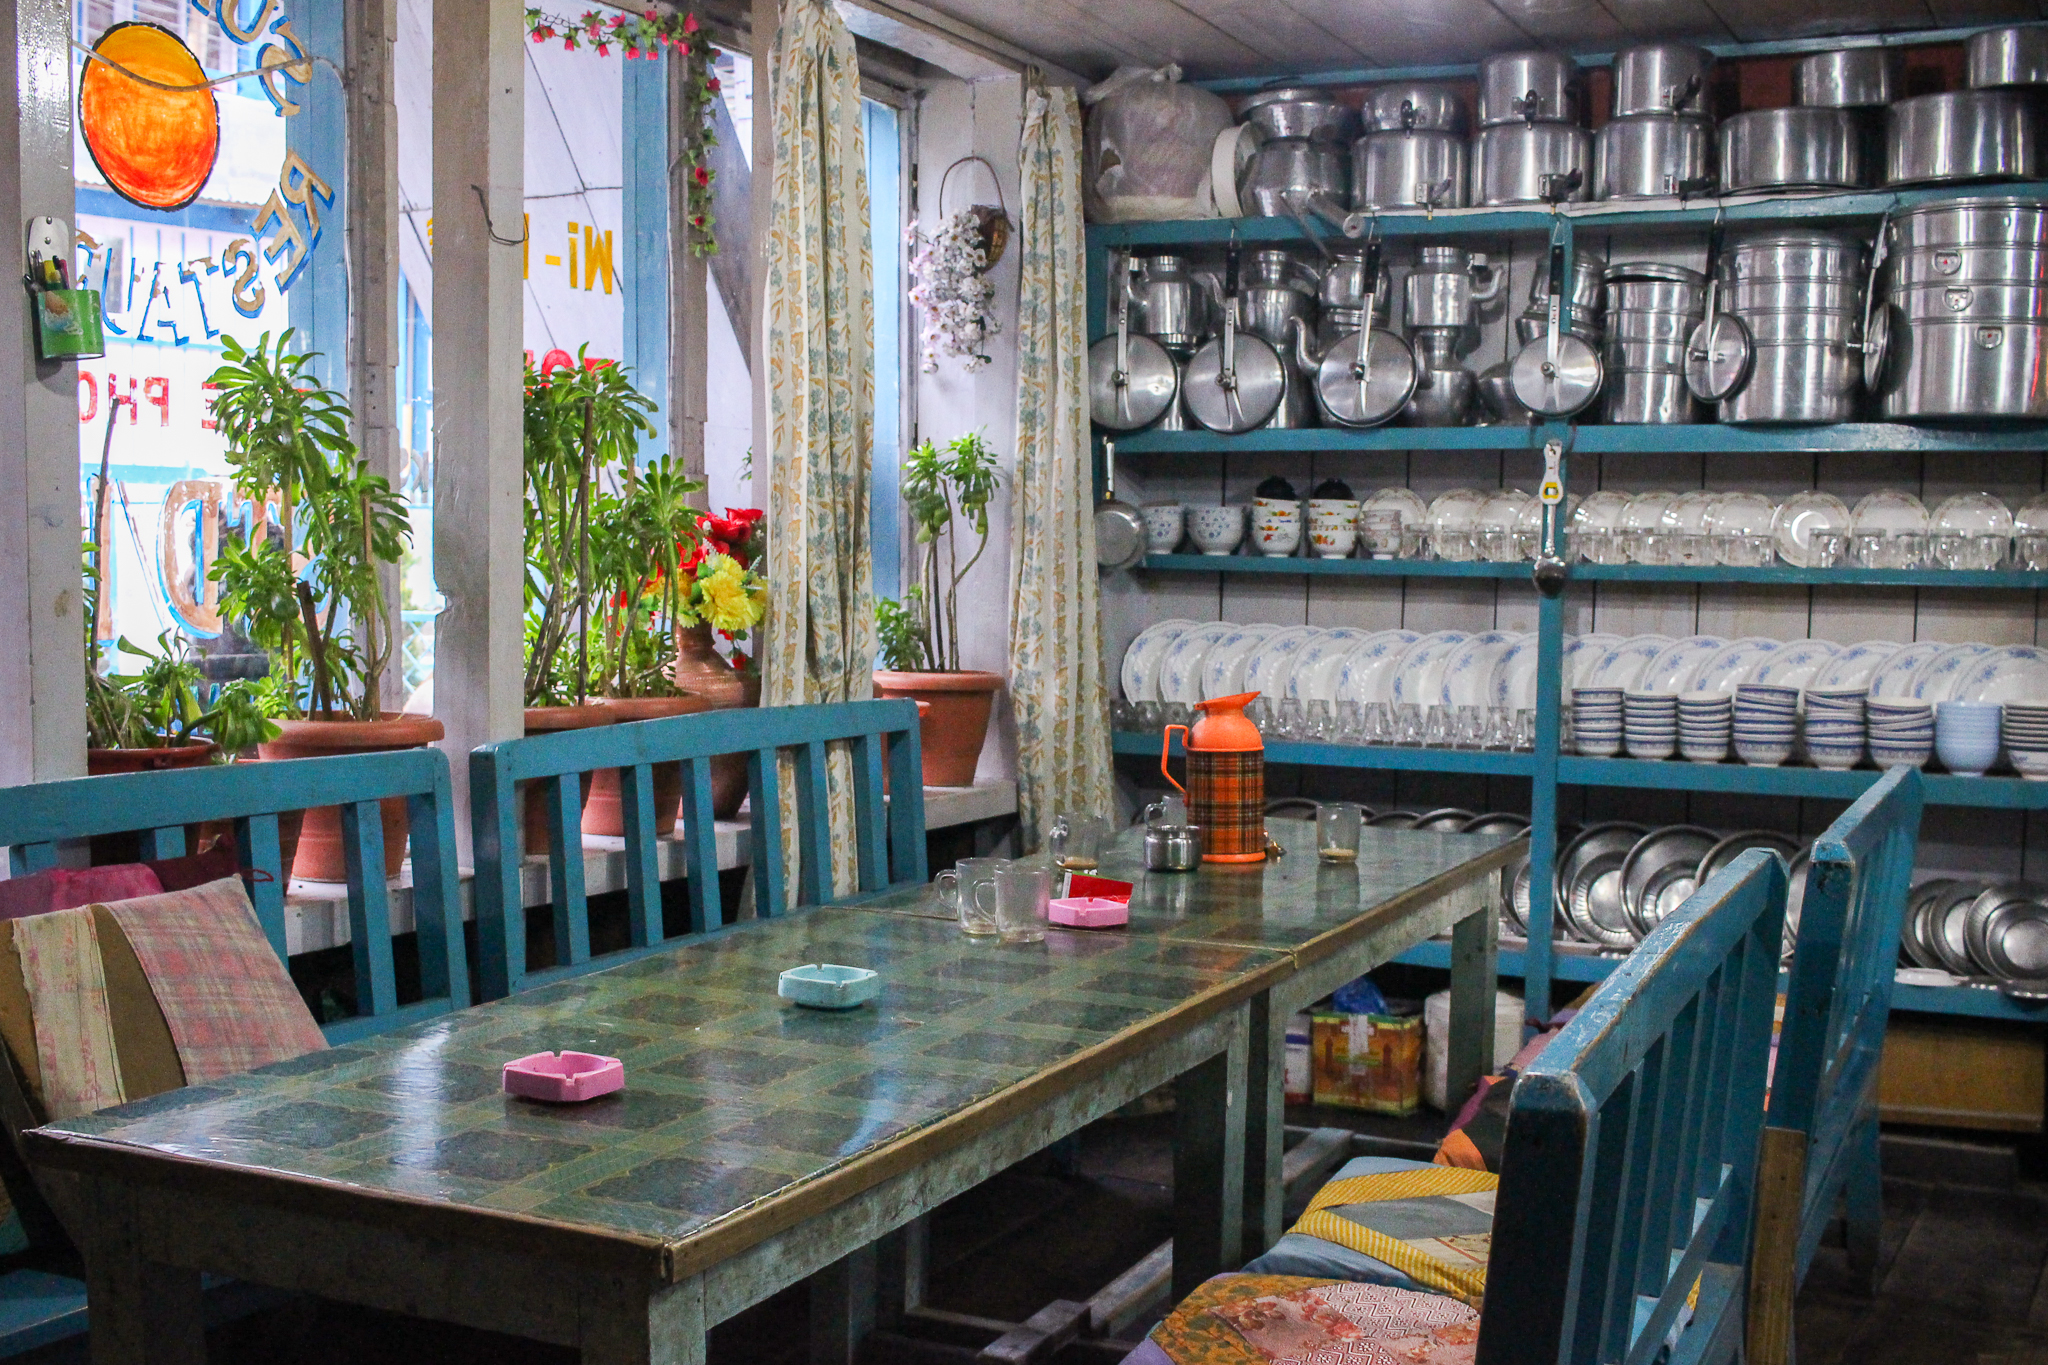 A colourful teahouse in Chame with perfectly displayed crockery